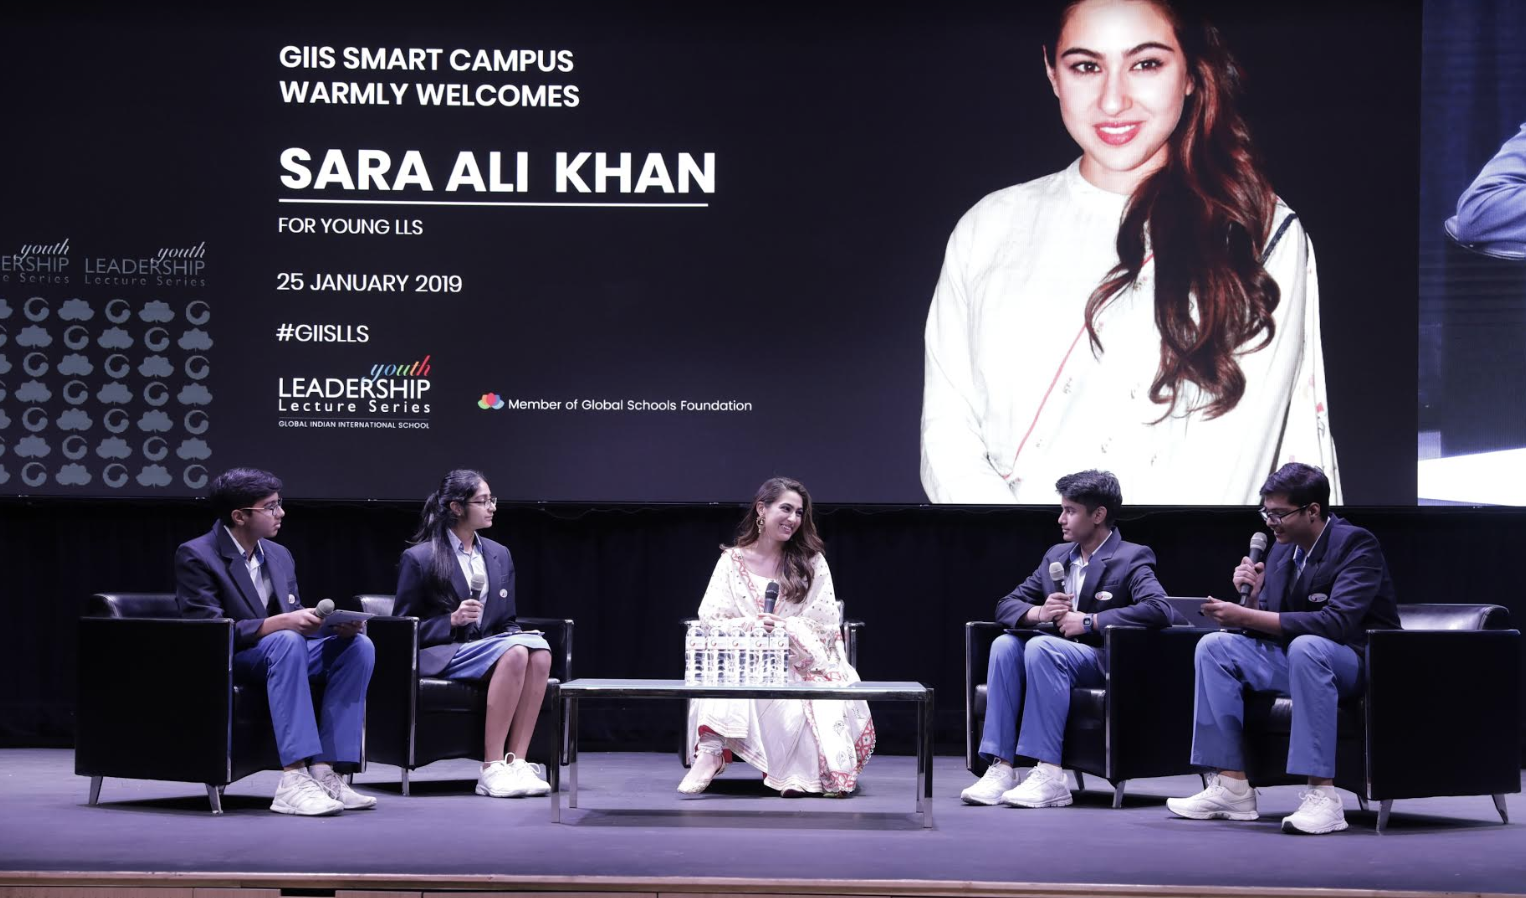 Sara Ali Khan answering questions posed to her by student reps of Global Indian International School (GIIS) Photo courtsey: GIIS